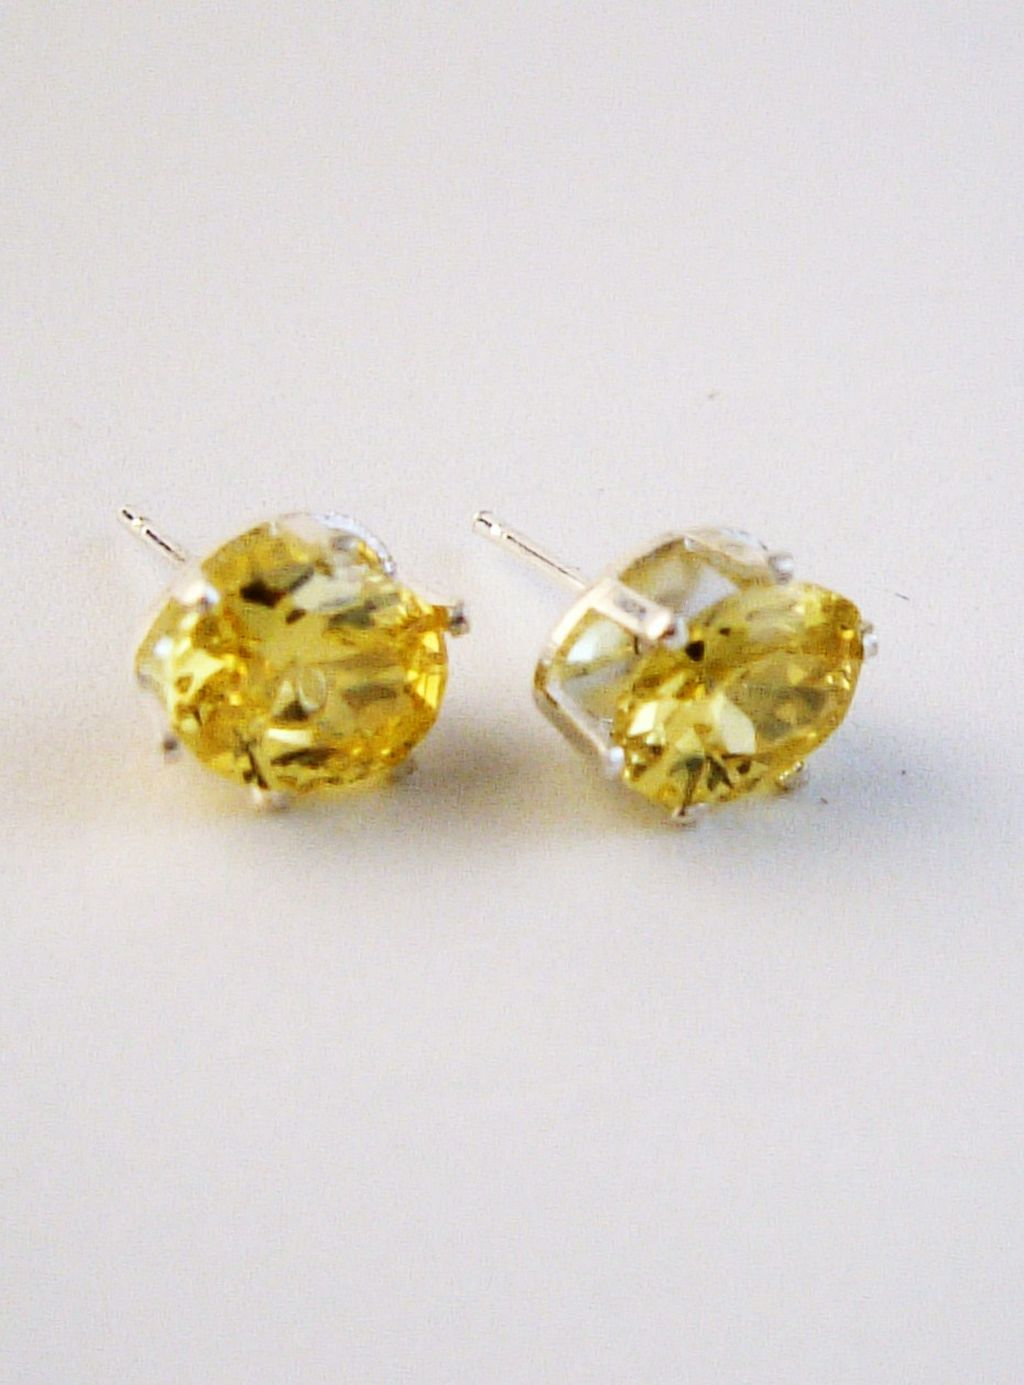 Yellow Sapphire Oval Cut Silver Stud Earrings Genuine CZ Cubic Zirconia